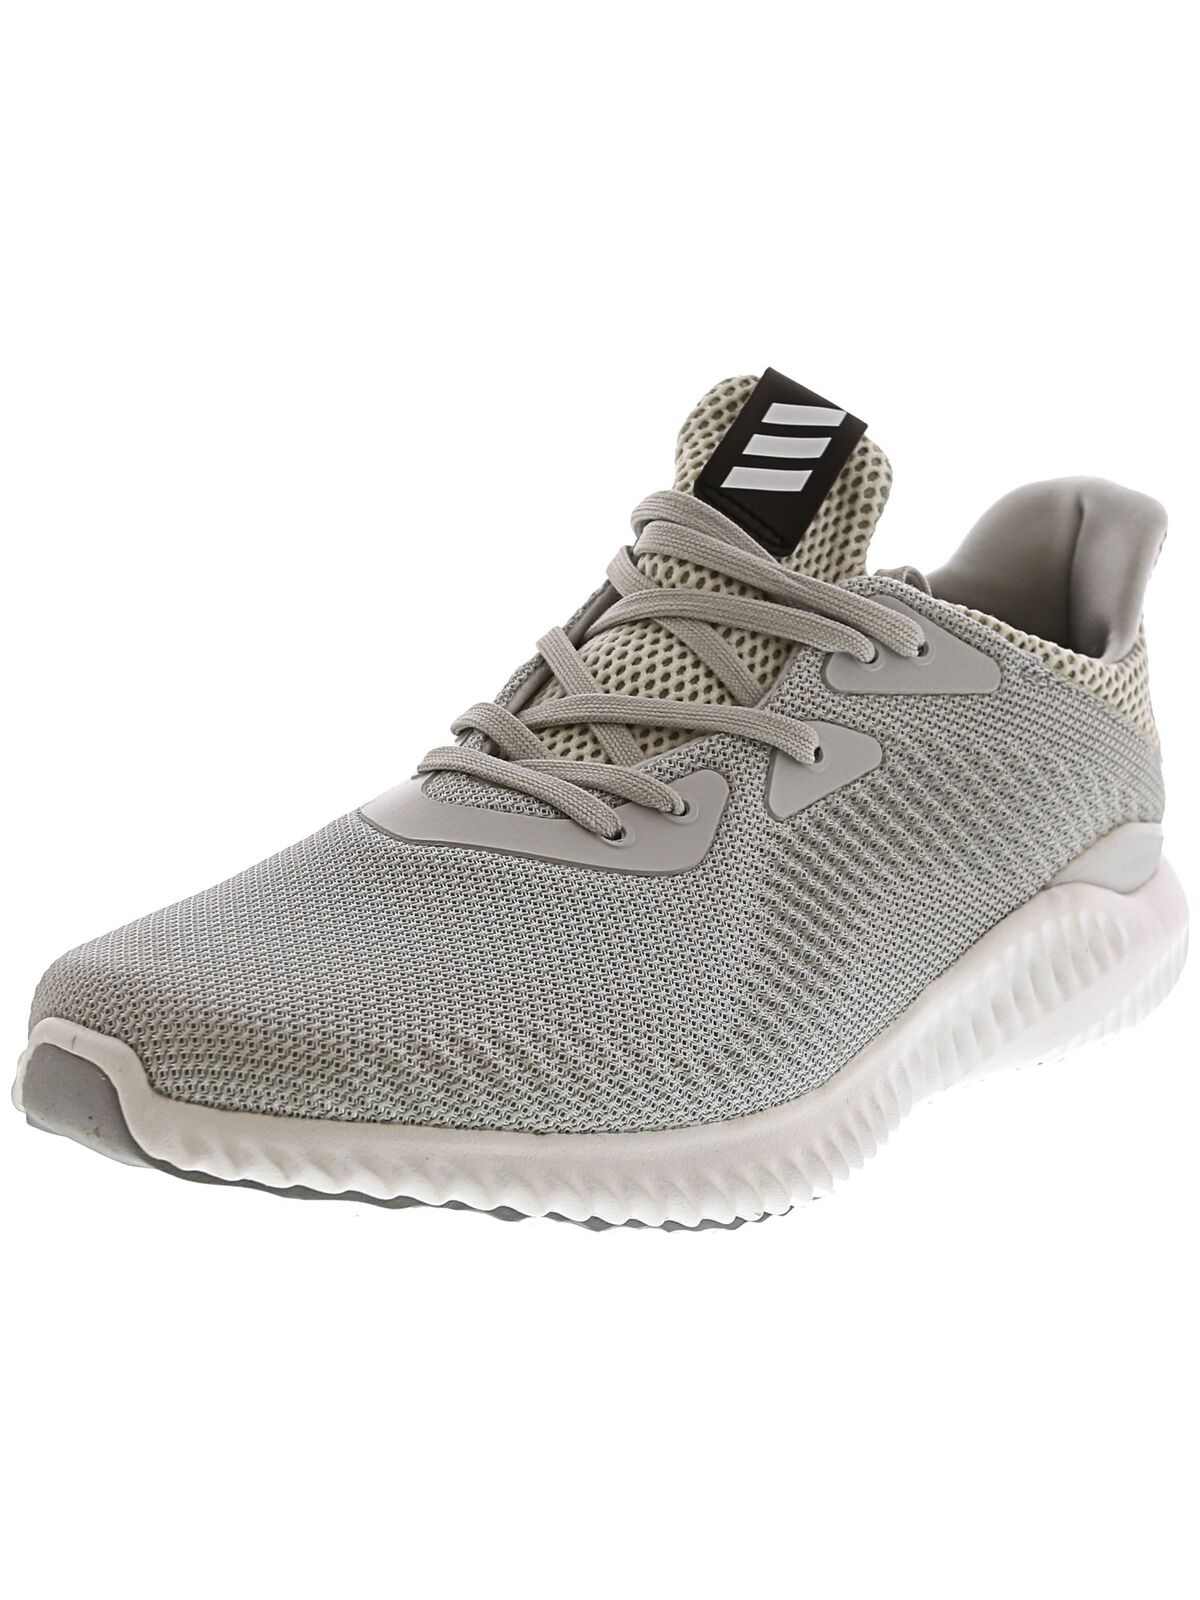 Adidas Men's Alphabounce 1 Ankle-High Mesh Running shoes